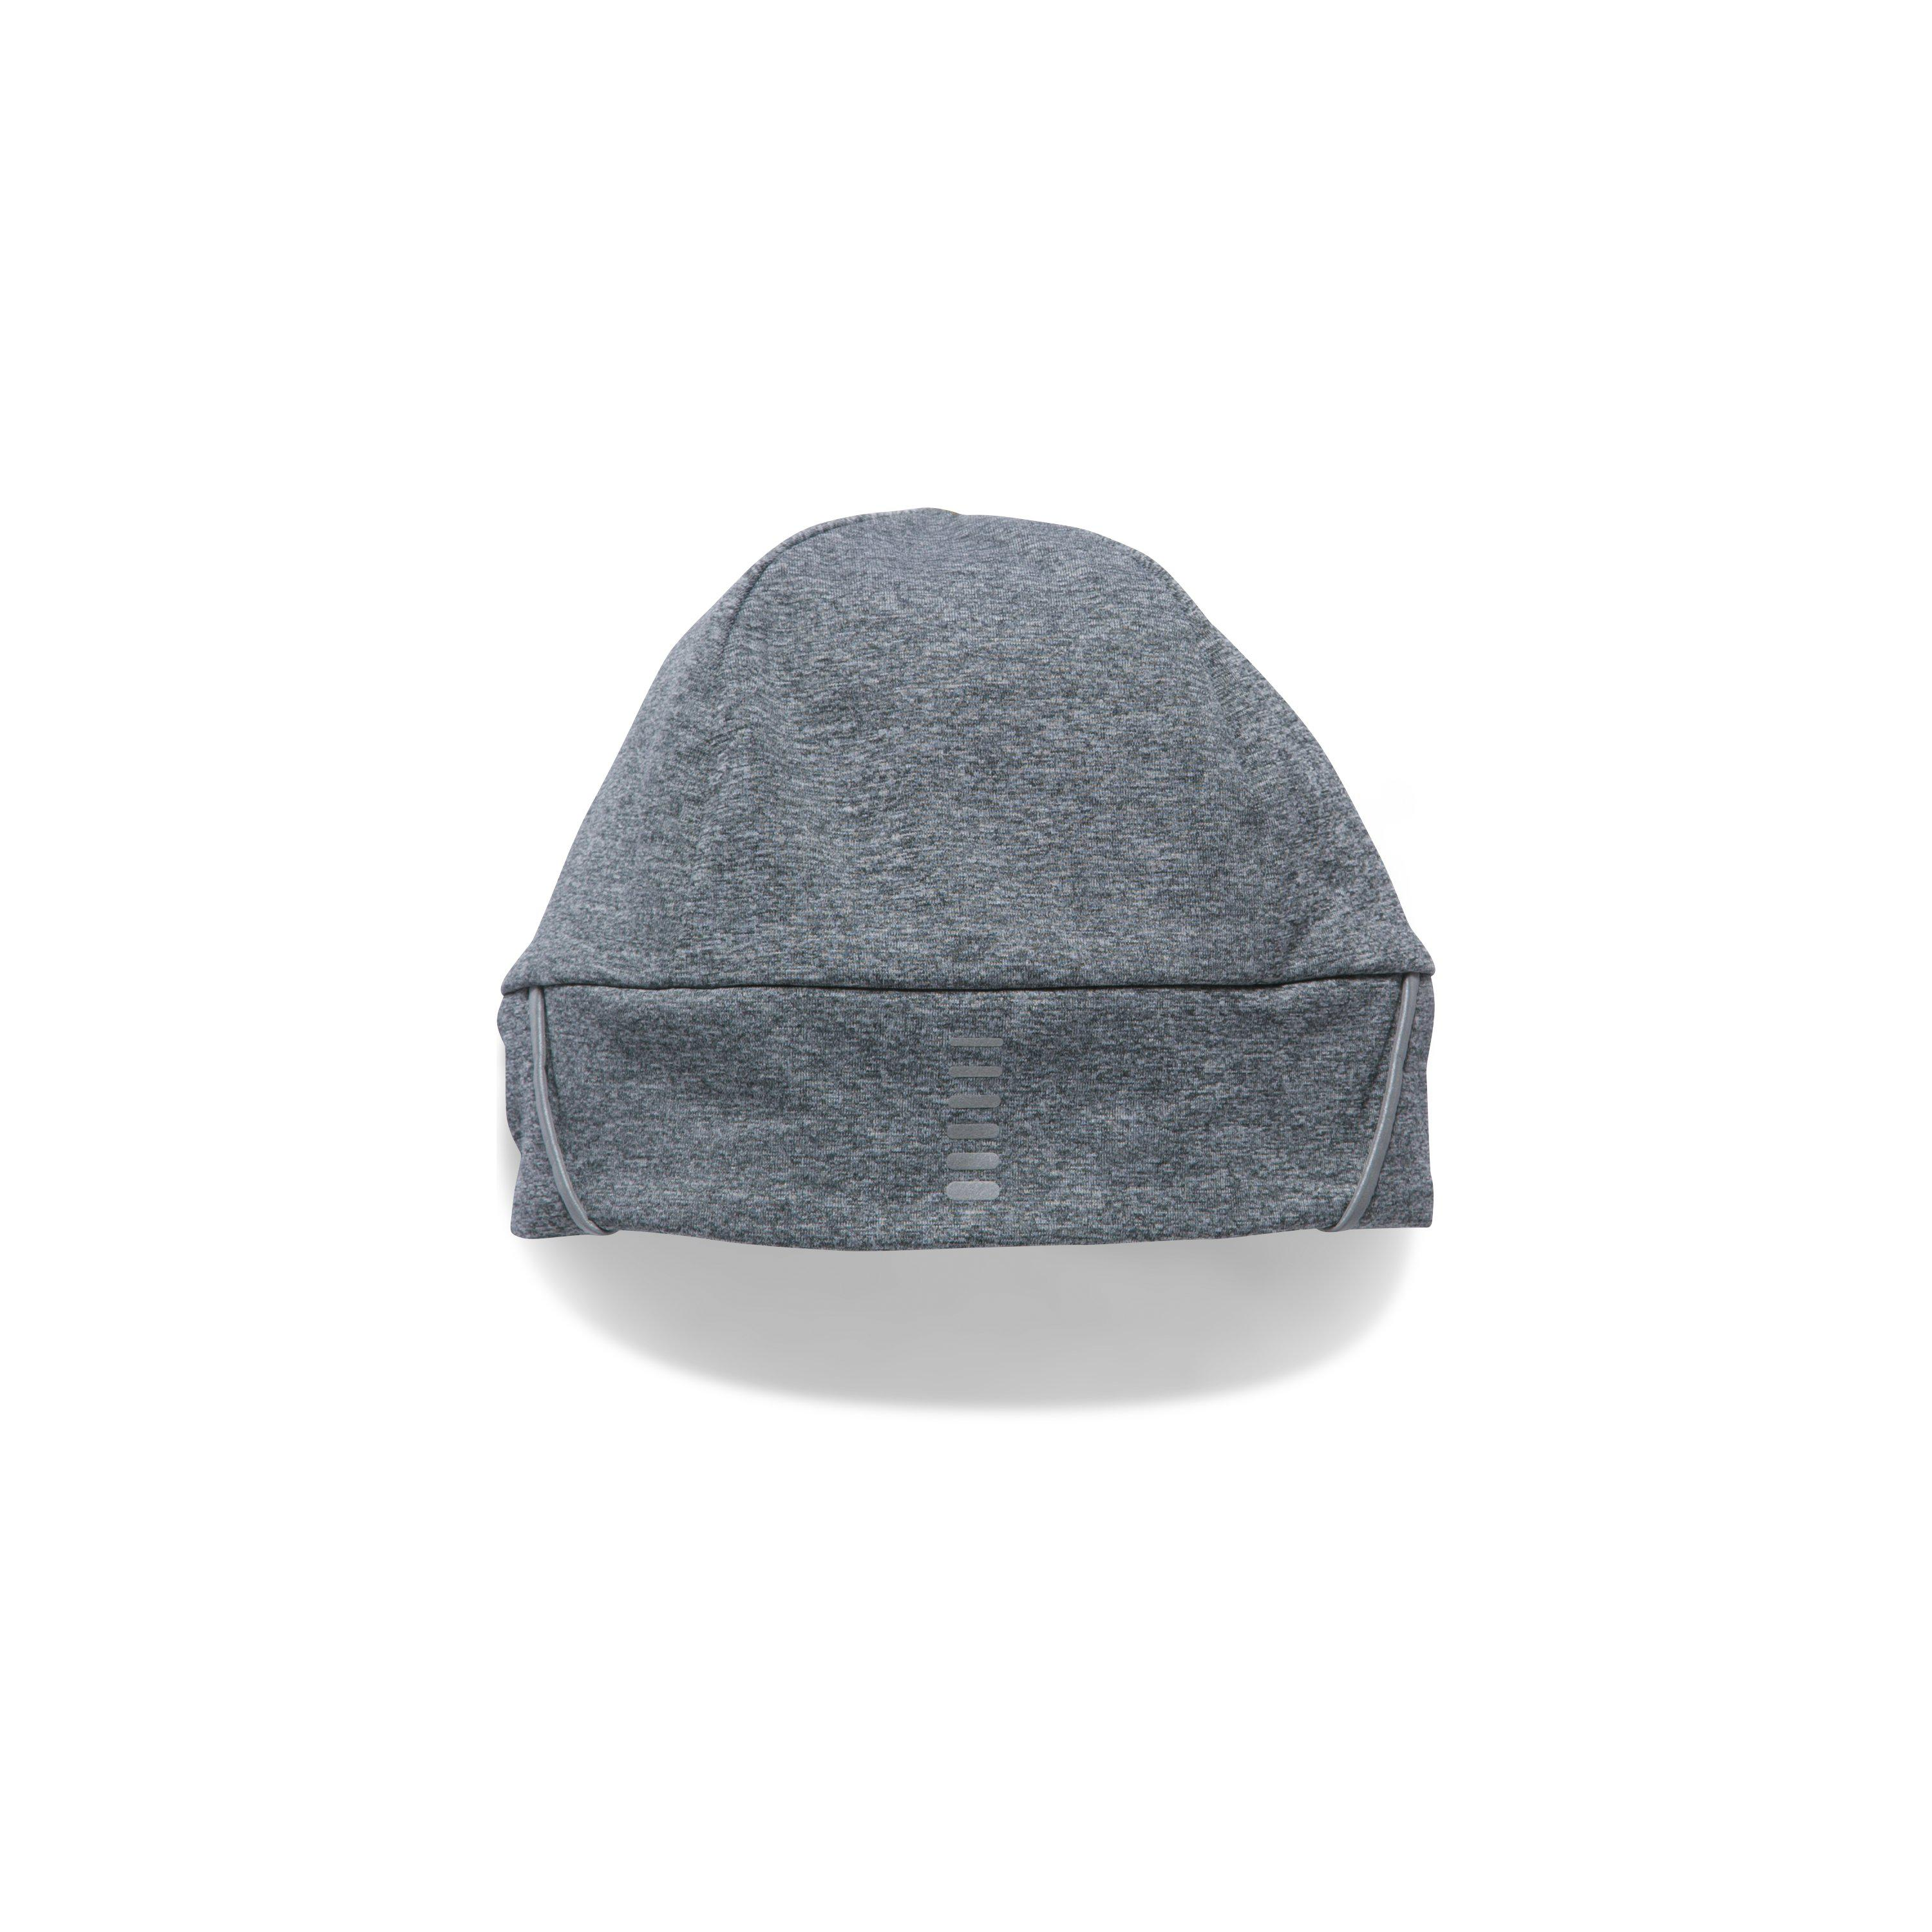 6522b1ae60a Lyst - Under Armour Men s Coldgear® Reactor Earbud Beanie in Gray ...